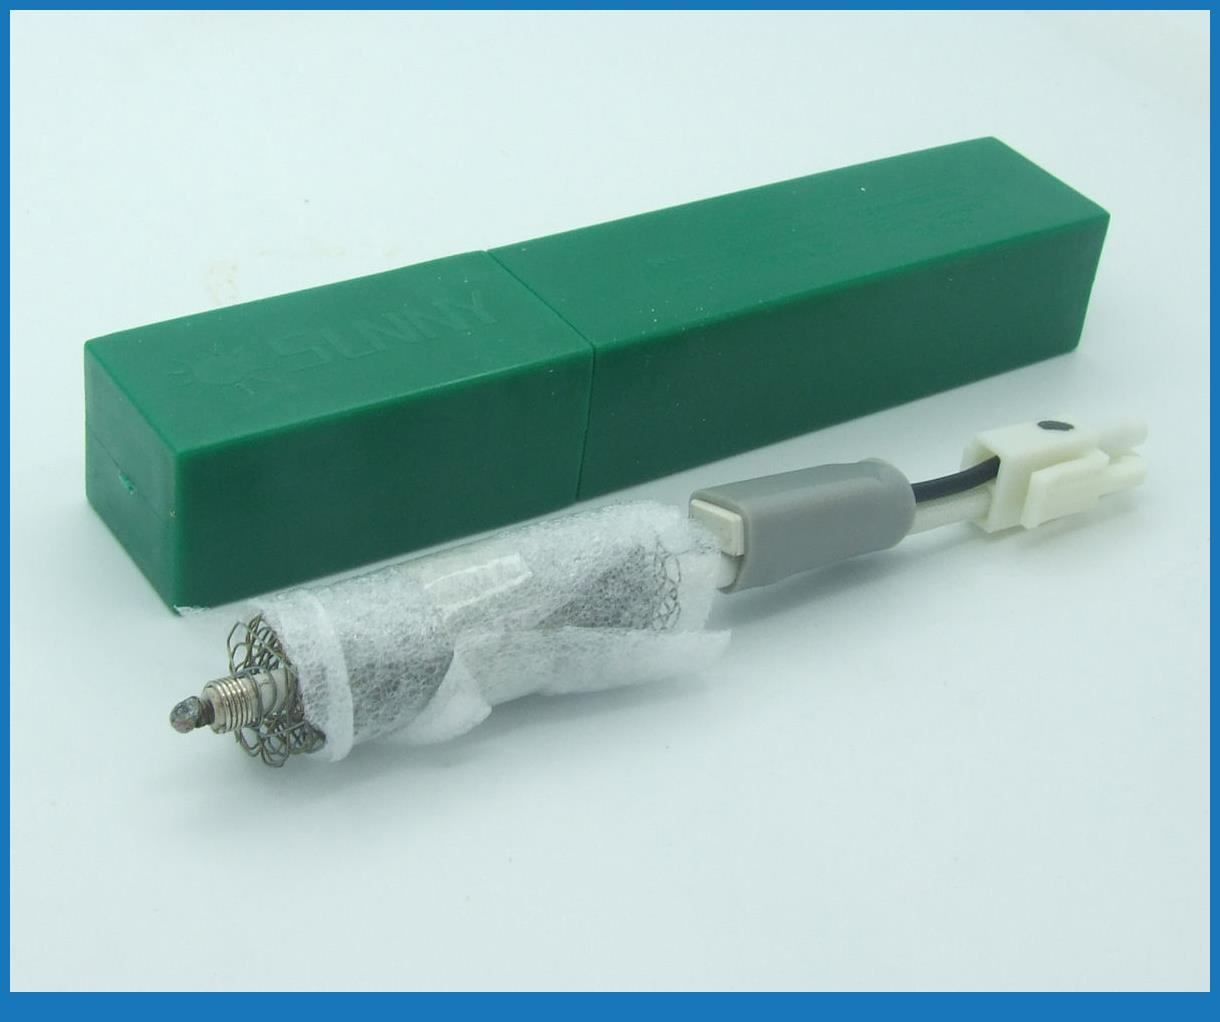 1PC AC 220V 250W Hot Air Gun Heating Core for Soldering station 952 850 850B 950